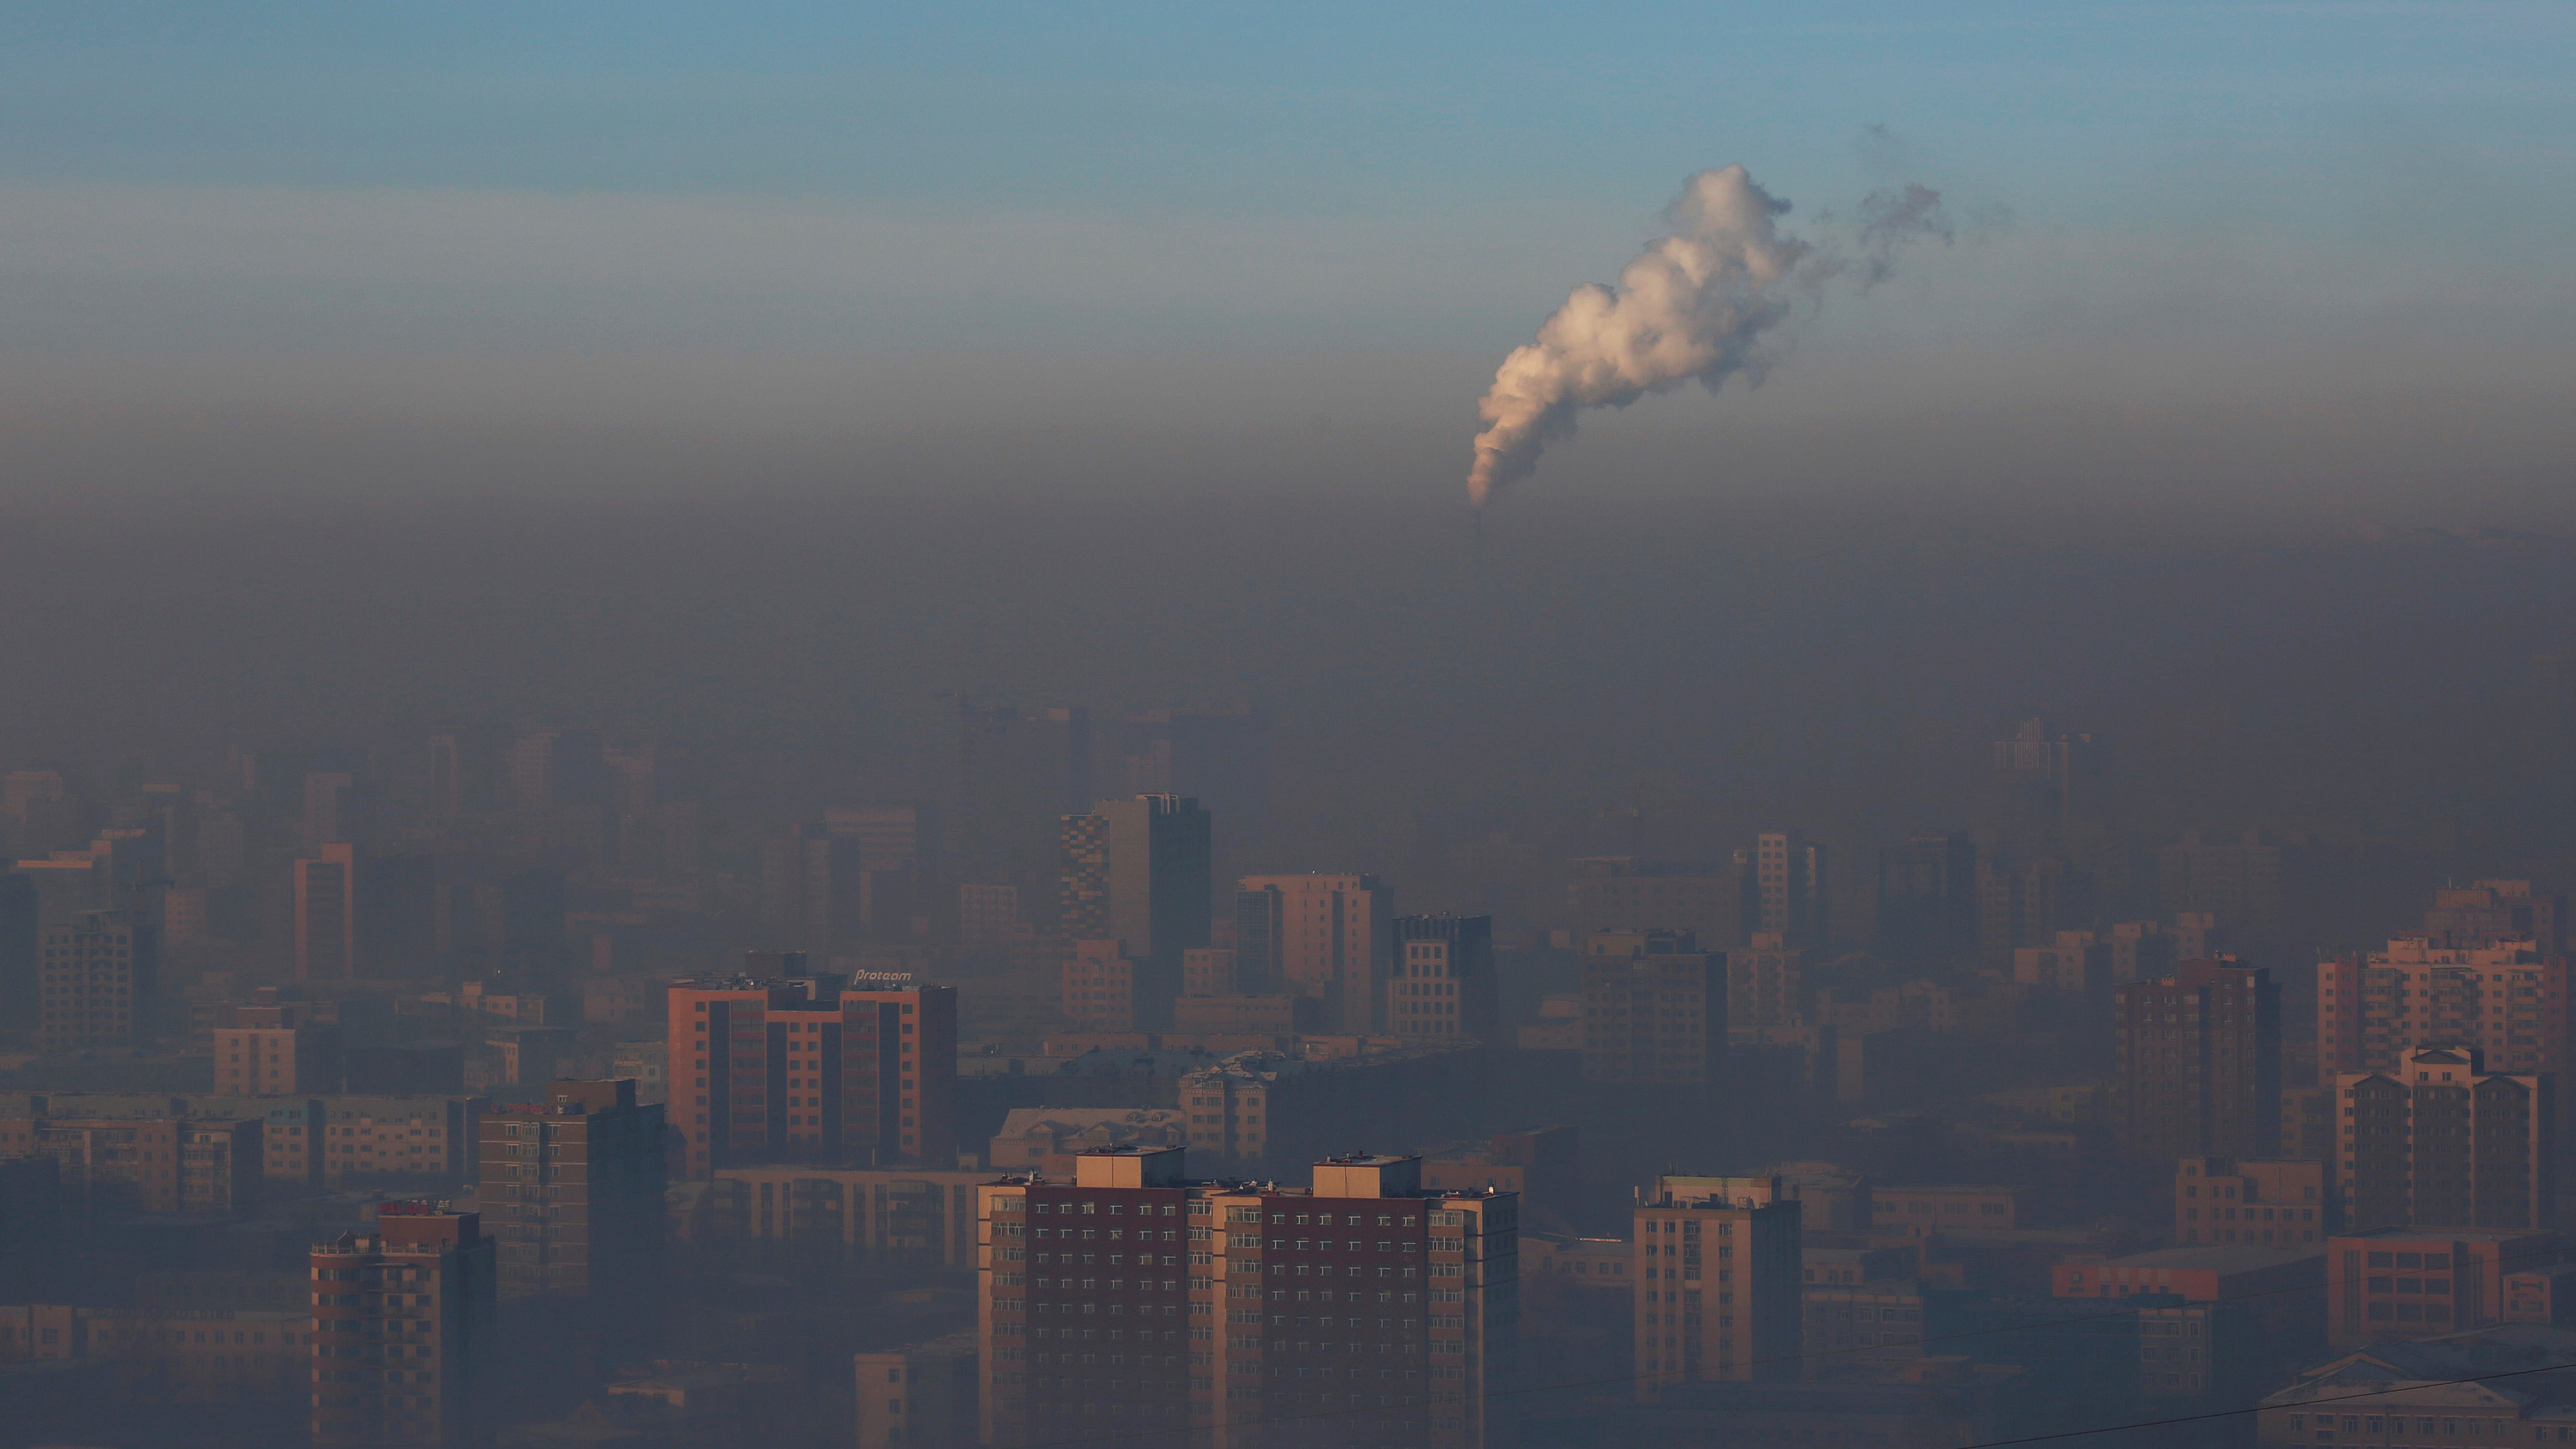 Emissions from a power plant chimney rise over Ulaanbaatar, Mongolia January 13, 2017.  REUTERS/B. Rentsendorj